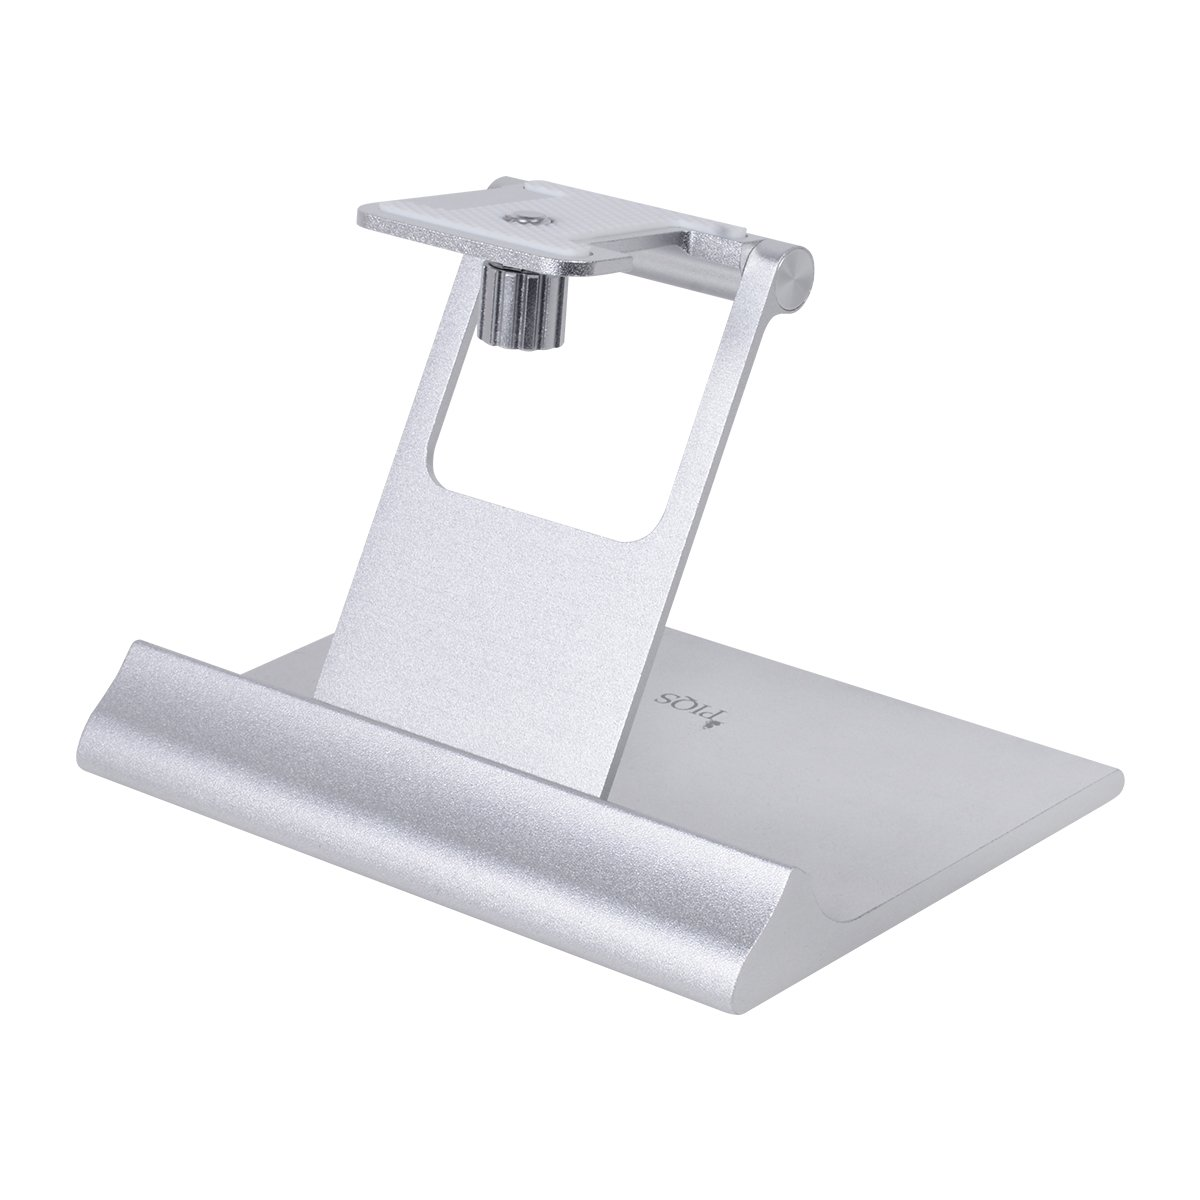 PIQS Smart Portable Projector Stand for Our TT-Virtual Touch Portable Projector, Mini, Rotatable Projector Mount, Aluminum Alloy, Suggest only for Home and Travelers as a kit with Our TT Projector Butterfly Technology PIQS-T2